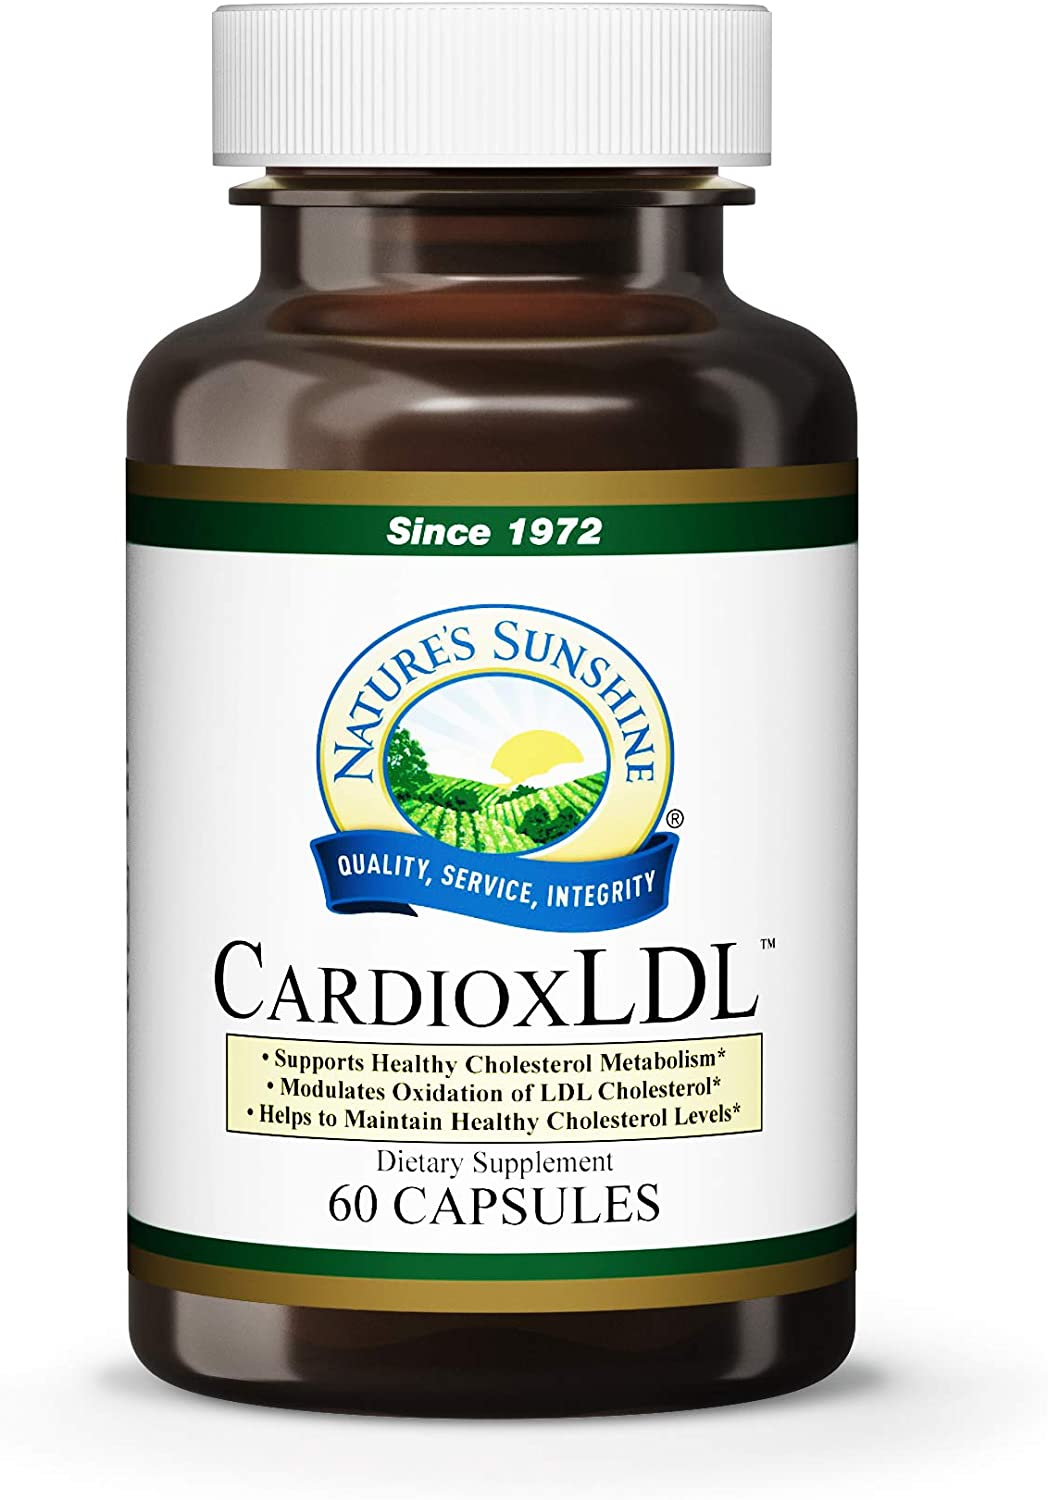 Nature s Sunshine CardioxLDL, 60 Capsules Cholesterol Supplement with Powerful Herbal Formula That May Help to Modulate LDL Cholesterol Oxidation